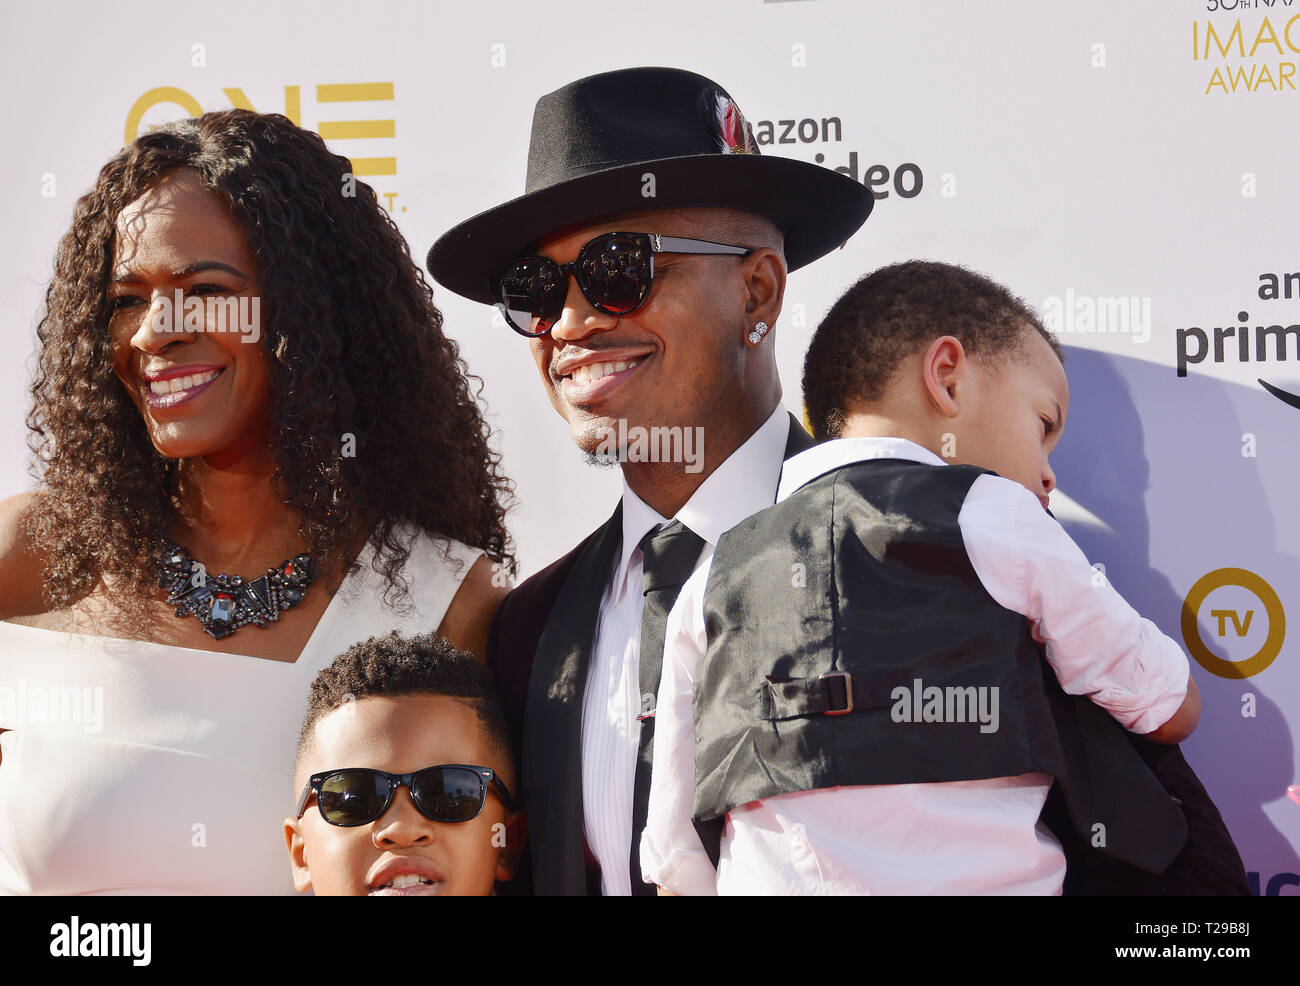 California, USA  30th Mar, 2019  Ne-Yo , wife and kids attends the